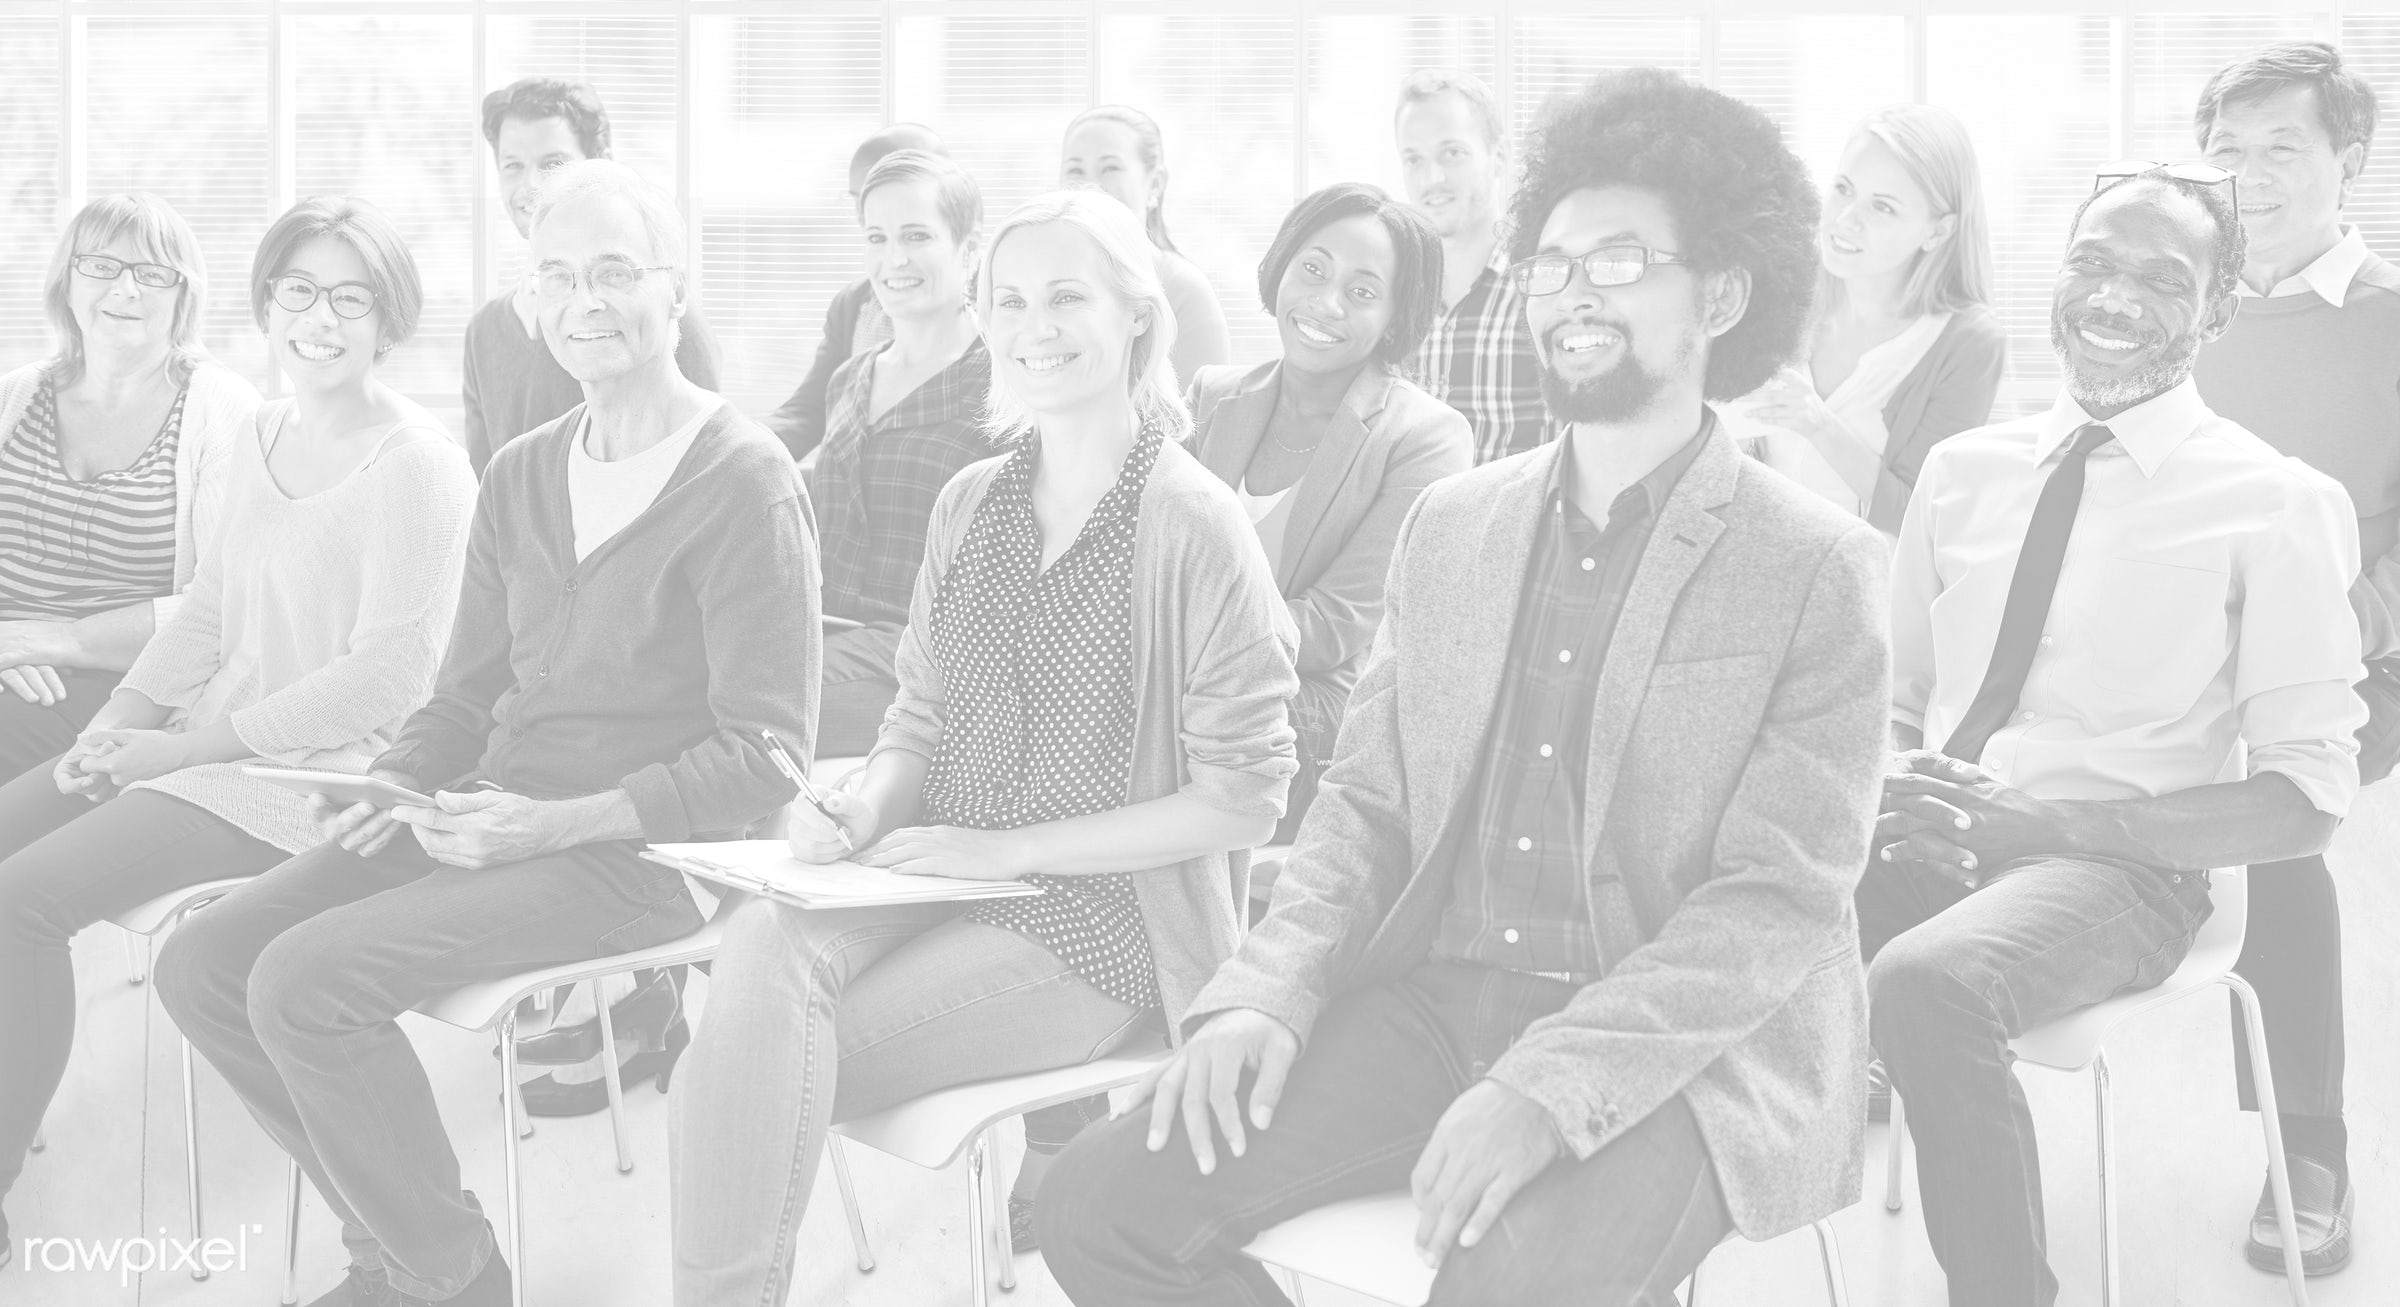 african descent, asian ethnicity, audience, casual, cheerful, classroom, conference, crowd, diverse, diversity, education,...